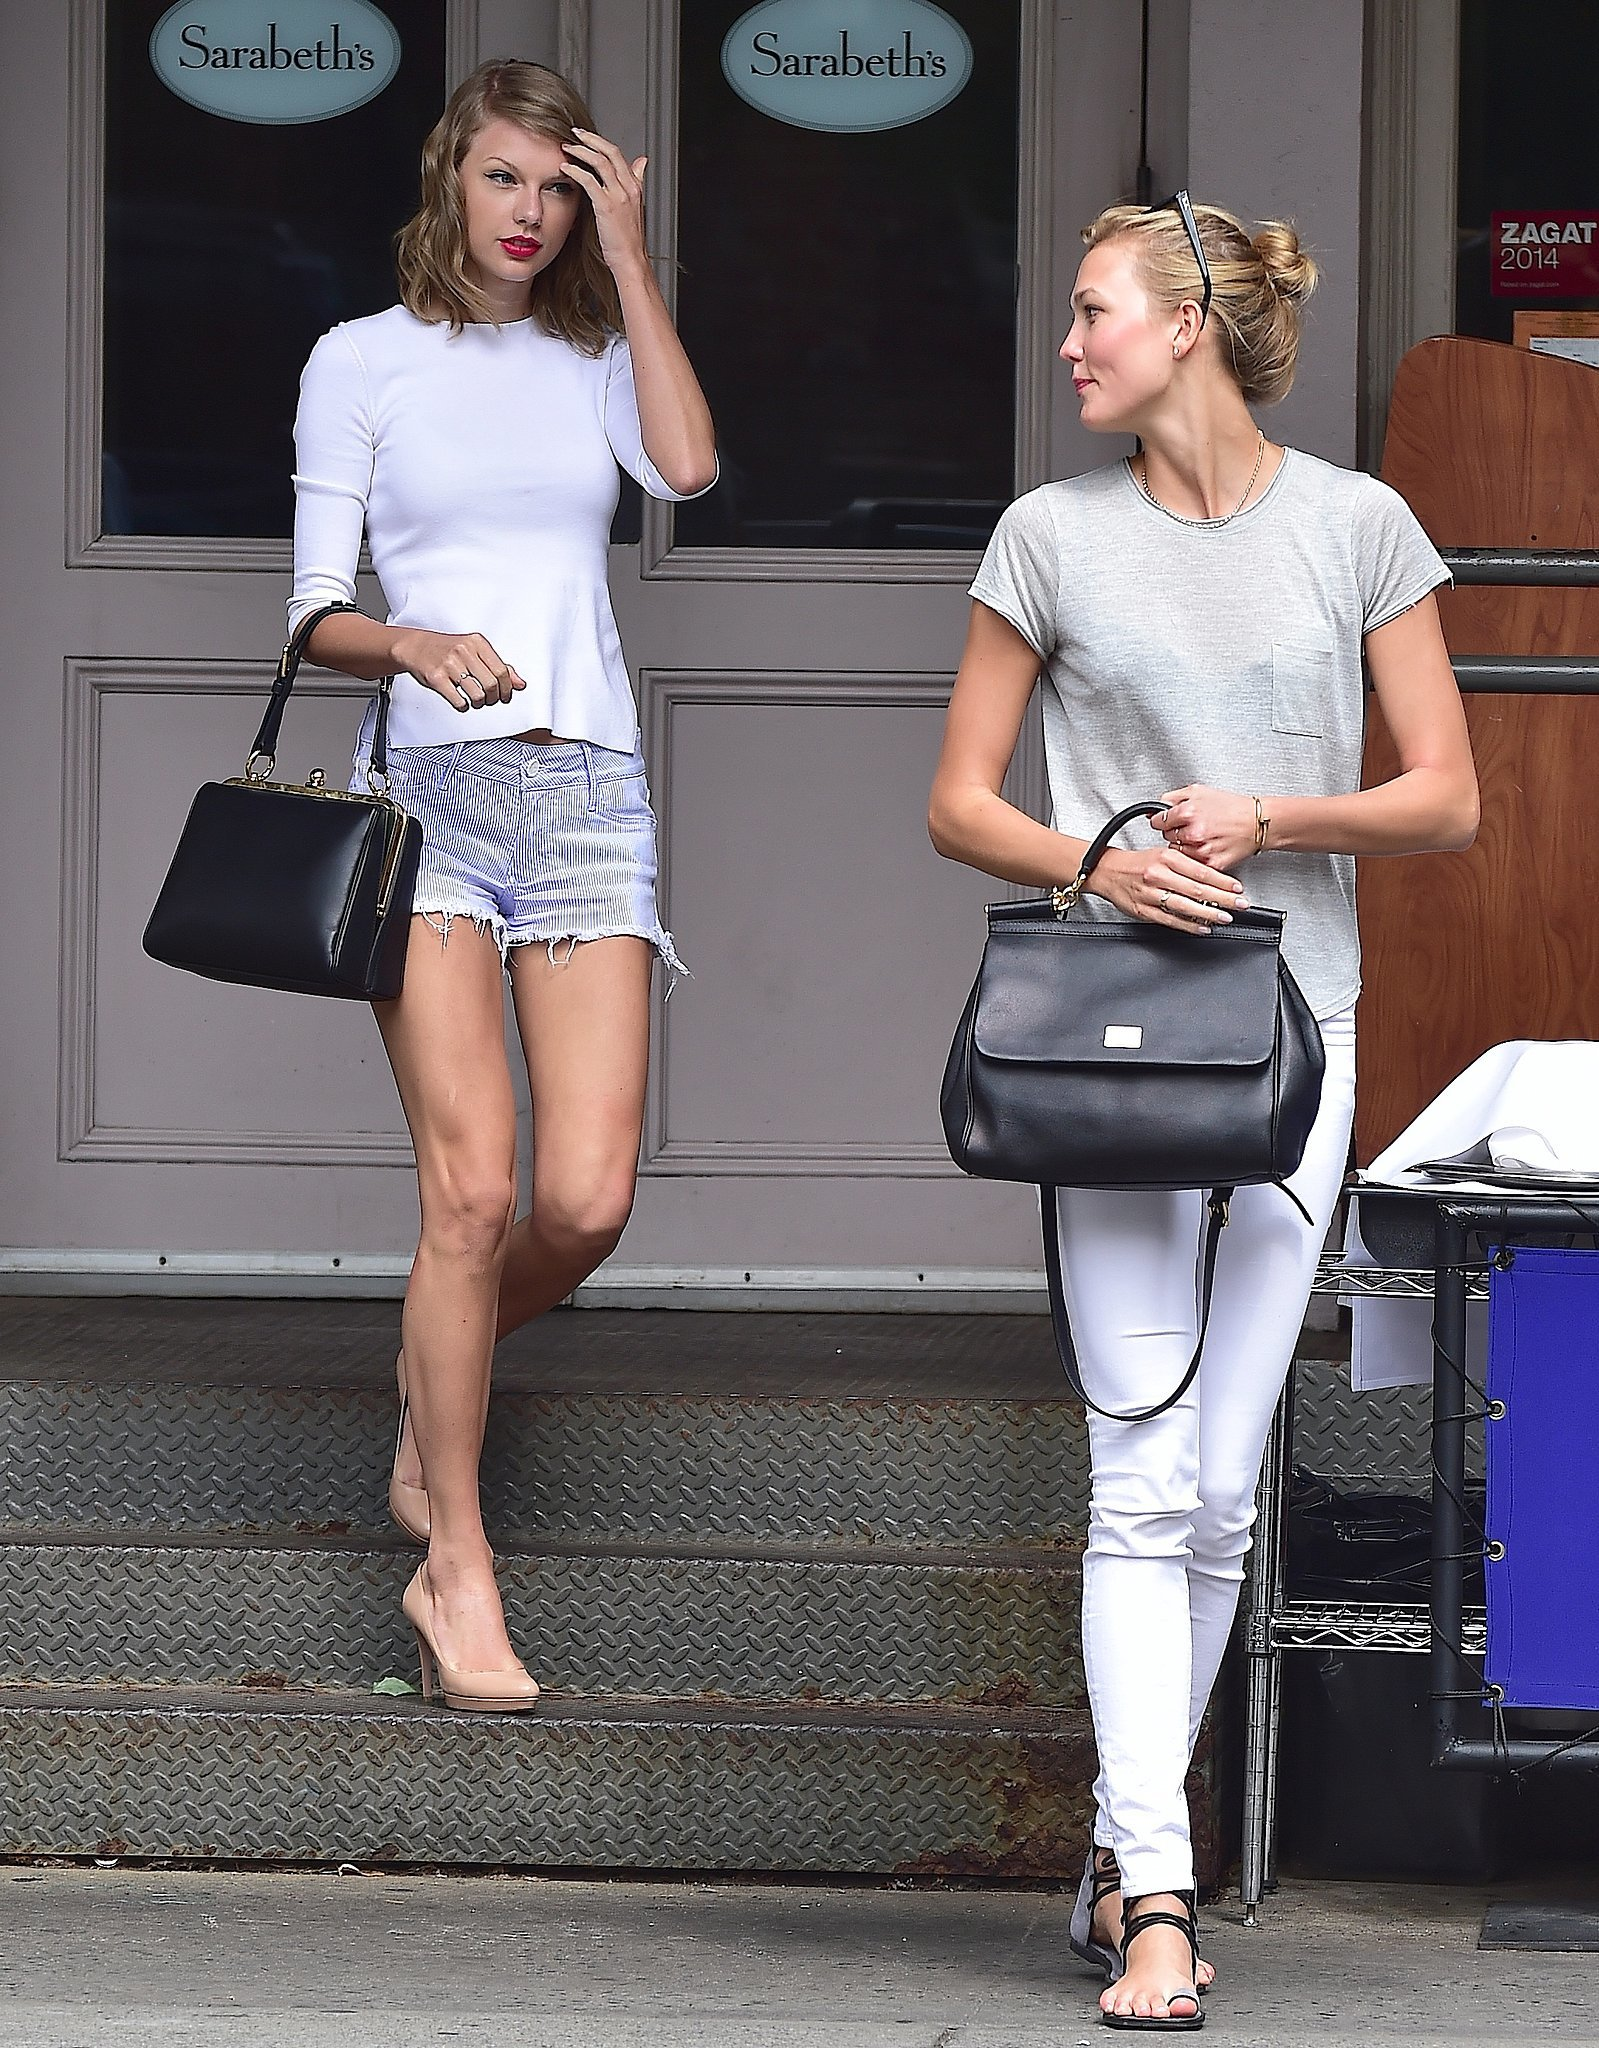 It's not like we haven't seen Taylor and Karlie together before, but we're fawning over this particular sighting because, well, they're both carrying Dolce & Gabbana satchels — the Agata and the Sicily,respectively. Not only do each of the bags complement the girls' outfits, but they also jibe with Karlie's and Taylor's distinctive tastes. So decide which way you'd go — classic and sharp like Taylor or laid-back with a boho touch like Karlie — then scroll down to see how you can pull off both looks. Here's to all the fashion friends out there. Source: Getty / Alo Ceballos